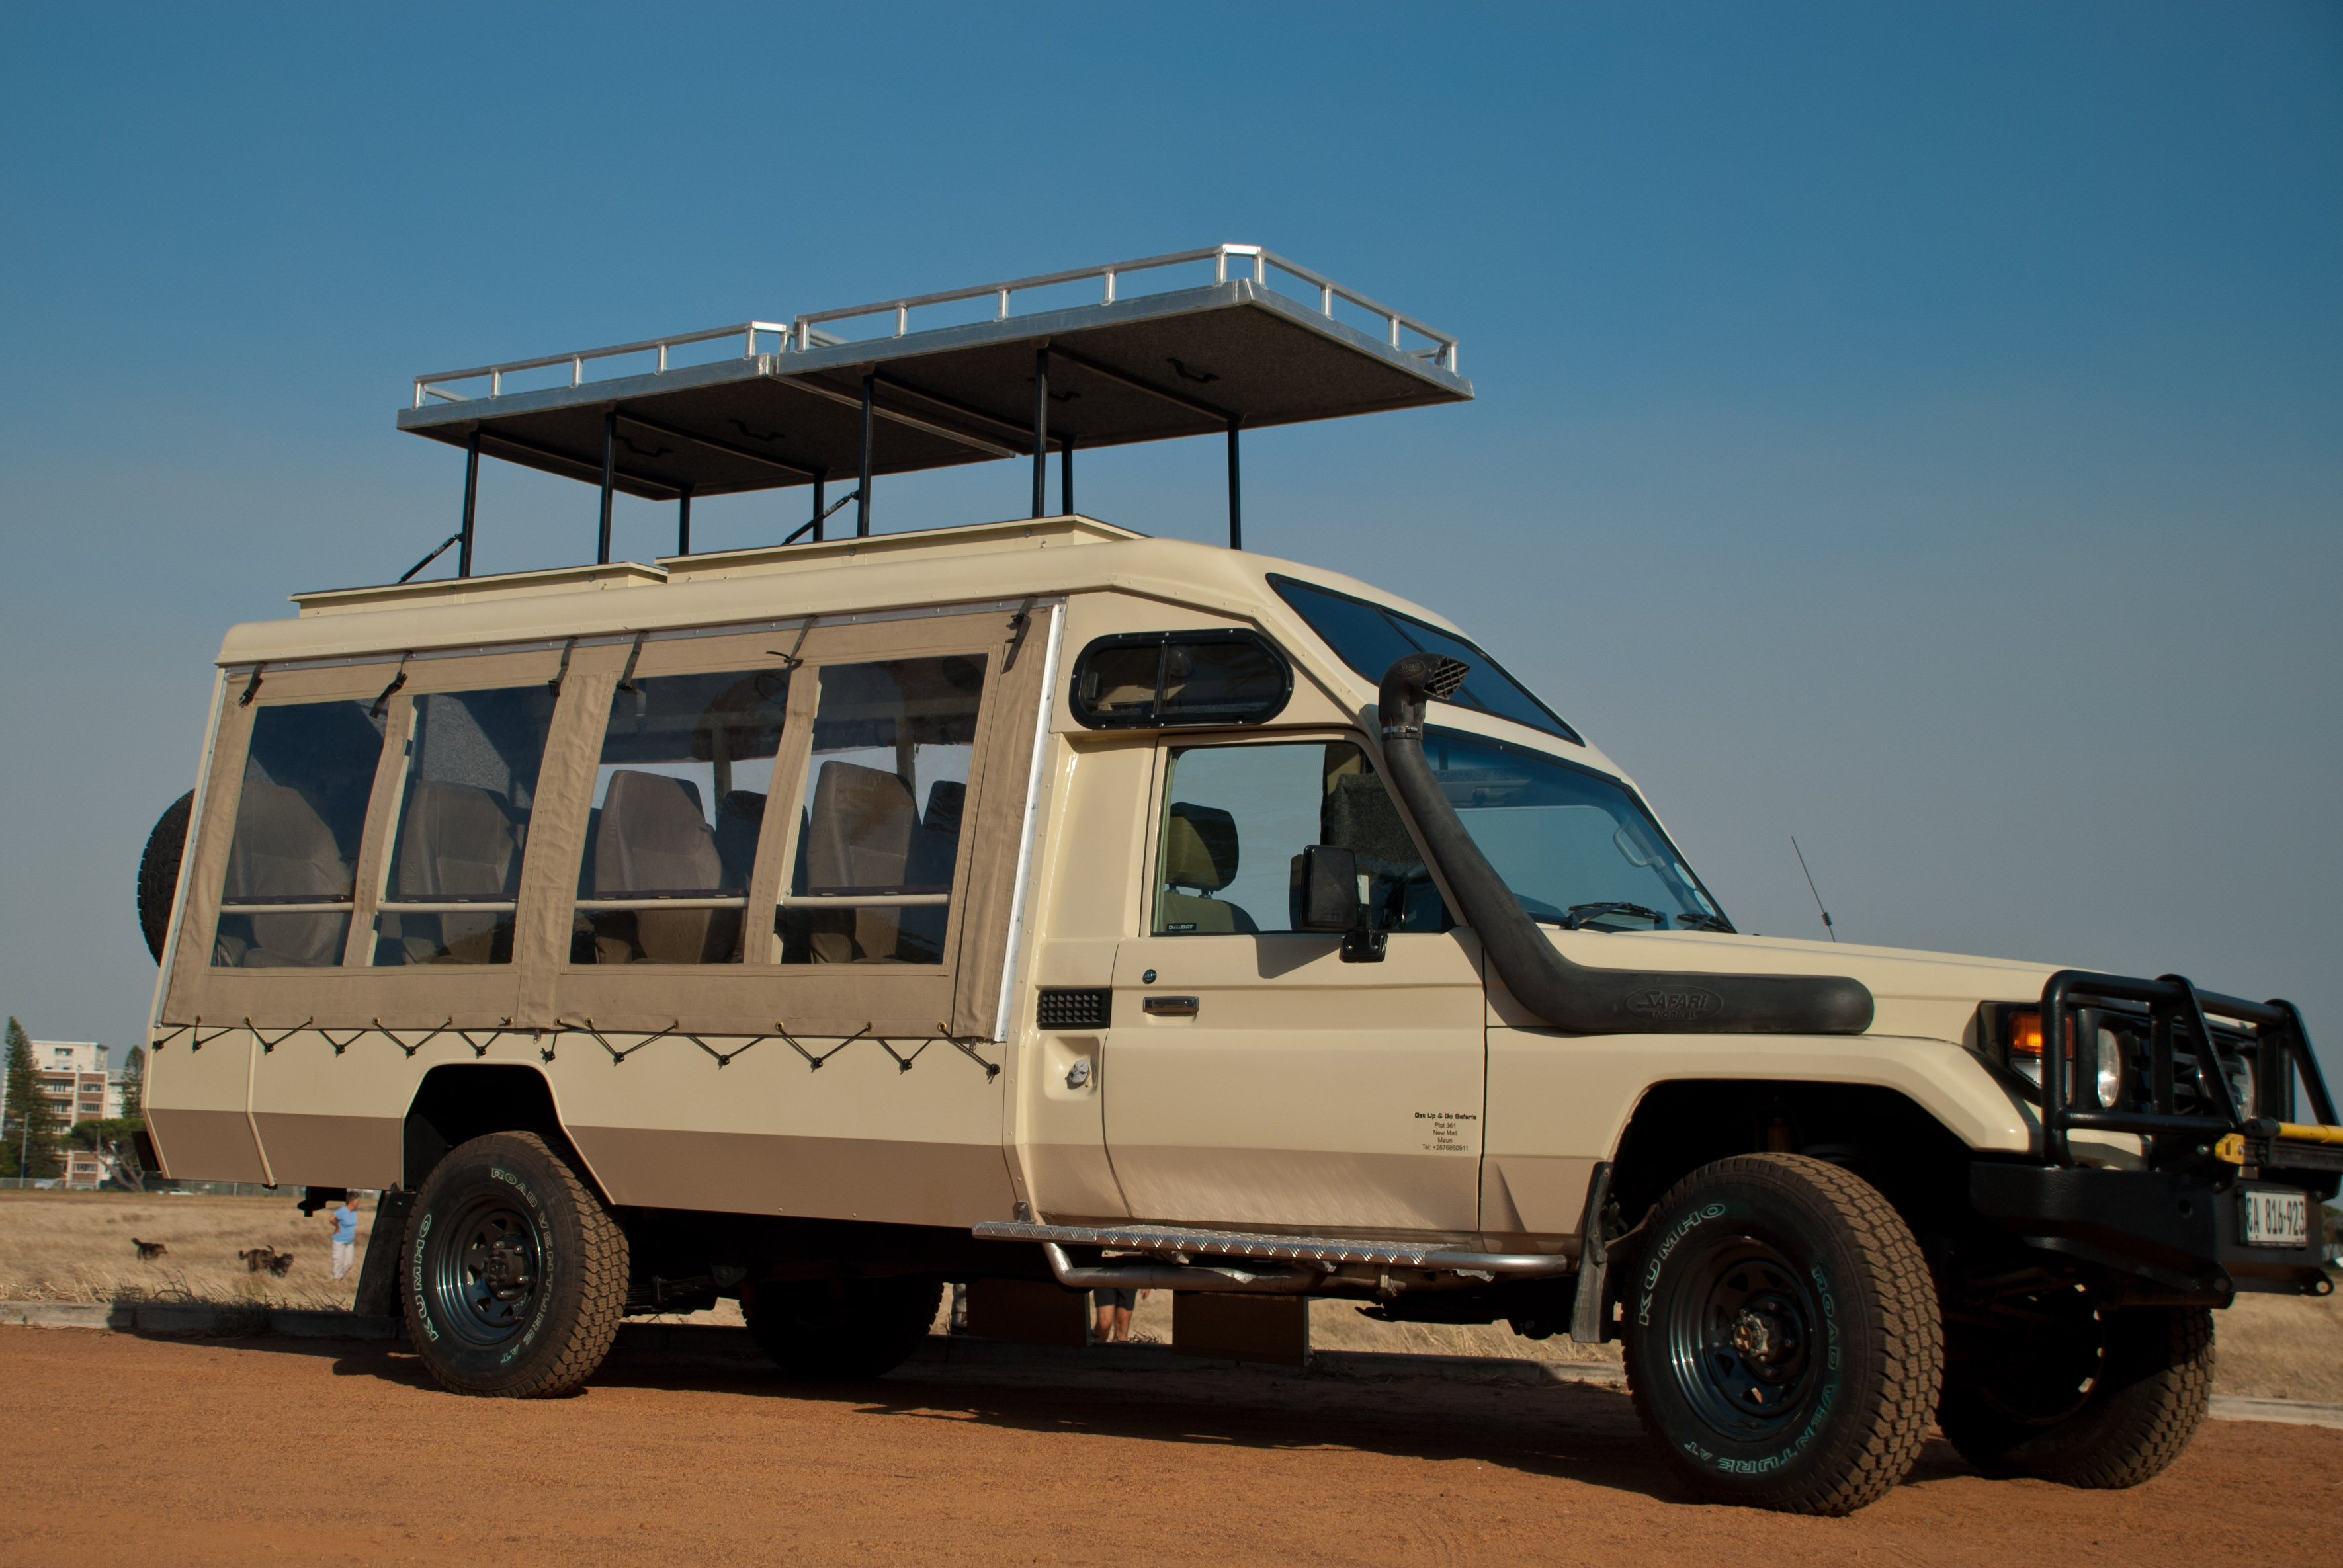 New 9 Seater Vehicle For Jenman East Africa Jenman